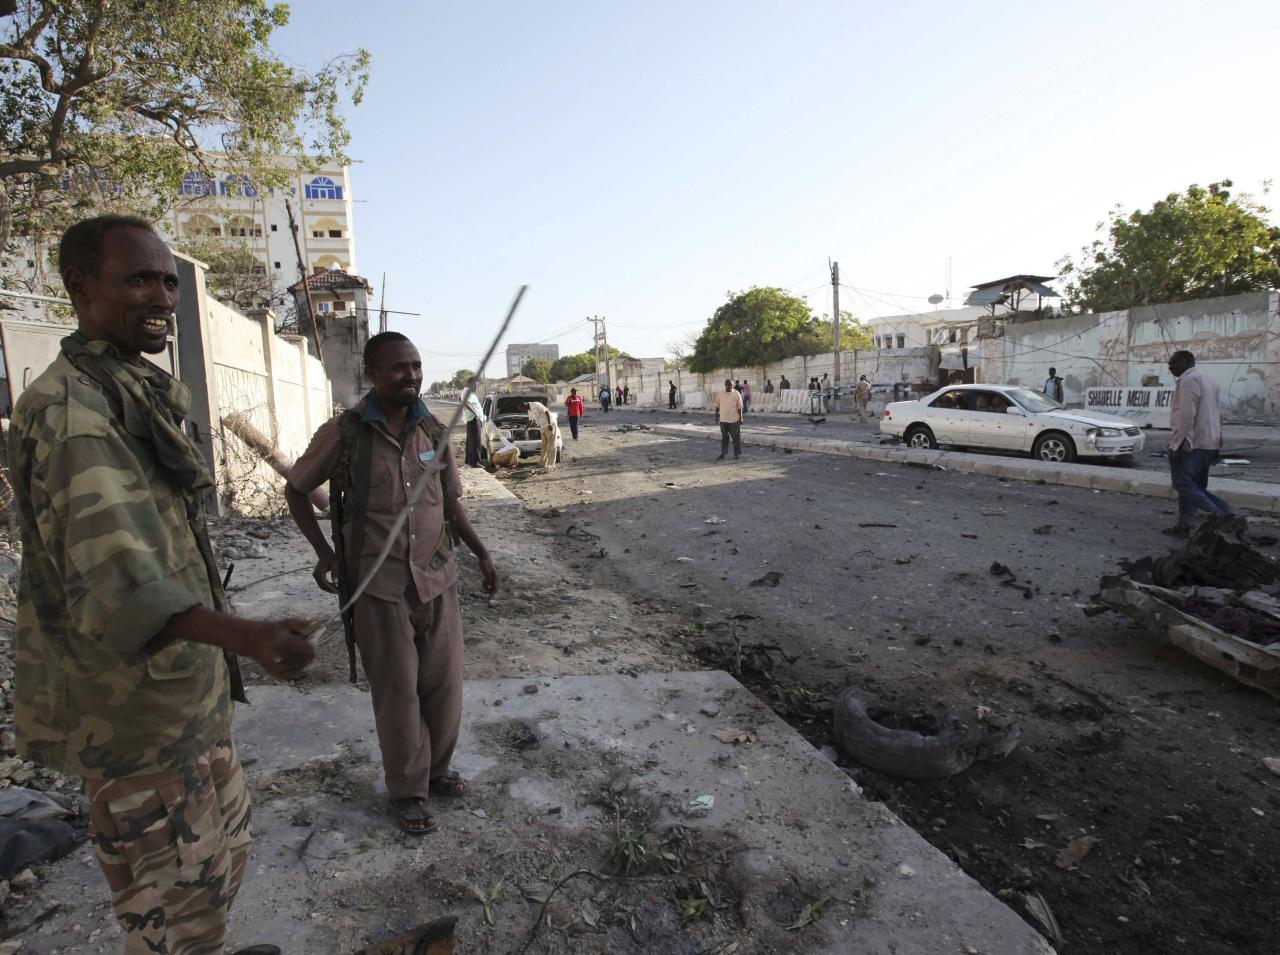 Soldiers assess the aftermath at the scene of an explosion outside Jazira hotel in Mogadishu, January 2, 2014. Three bombs exploded within an hour outside the hotel in a heavily fortified district of the Somali capital on Wednesday, killing at least 11 people. REUTERS/Omar Faruk (SOMALIA - Tags: CIVIL UNREST DISASTER MILITARY)